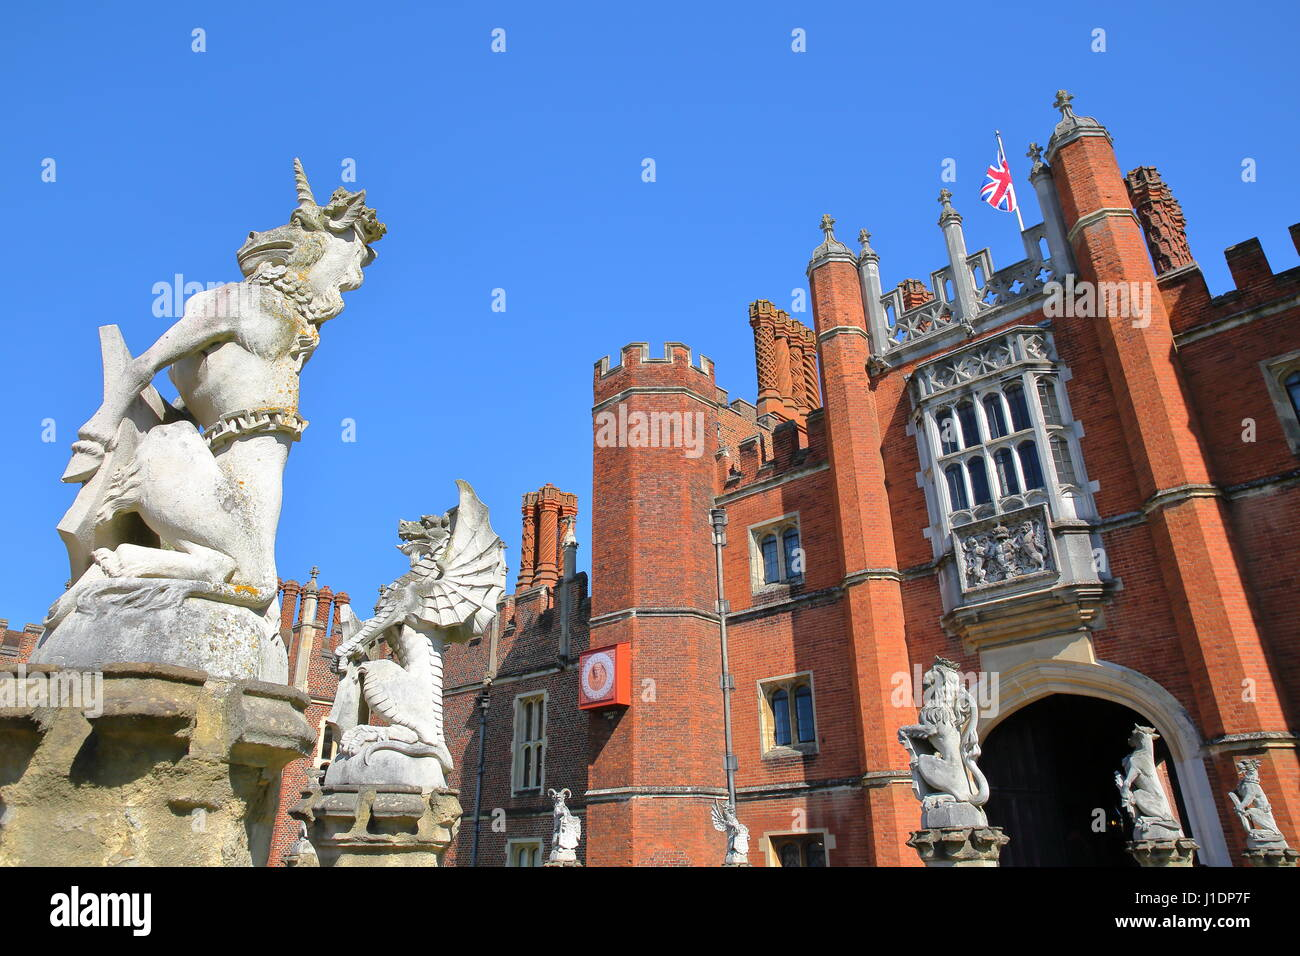 LONDON, UK - APRIL 9, 2017: The West front and main entrance of Hampton Court Palace in Southwest London with details - Stock Image